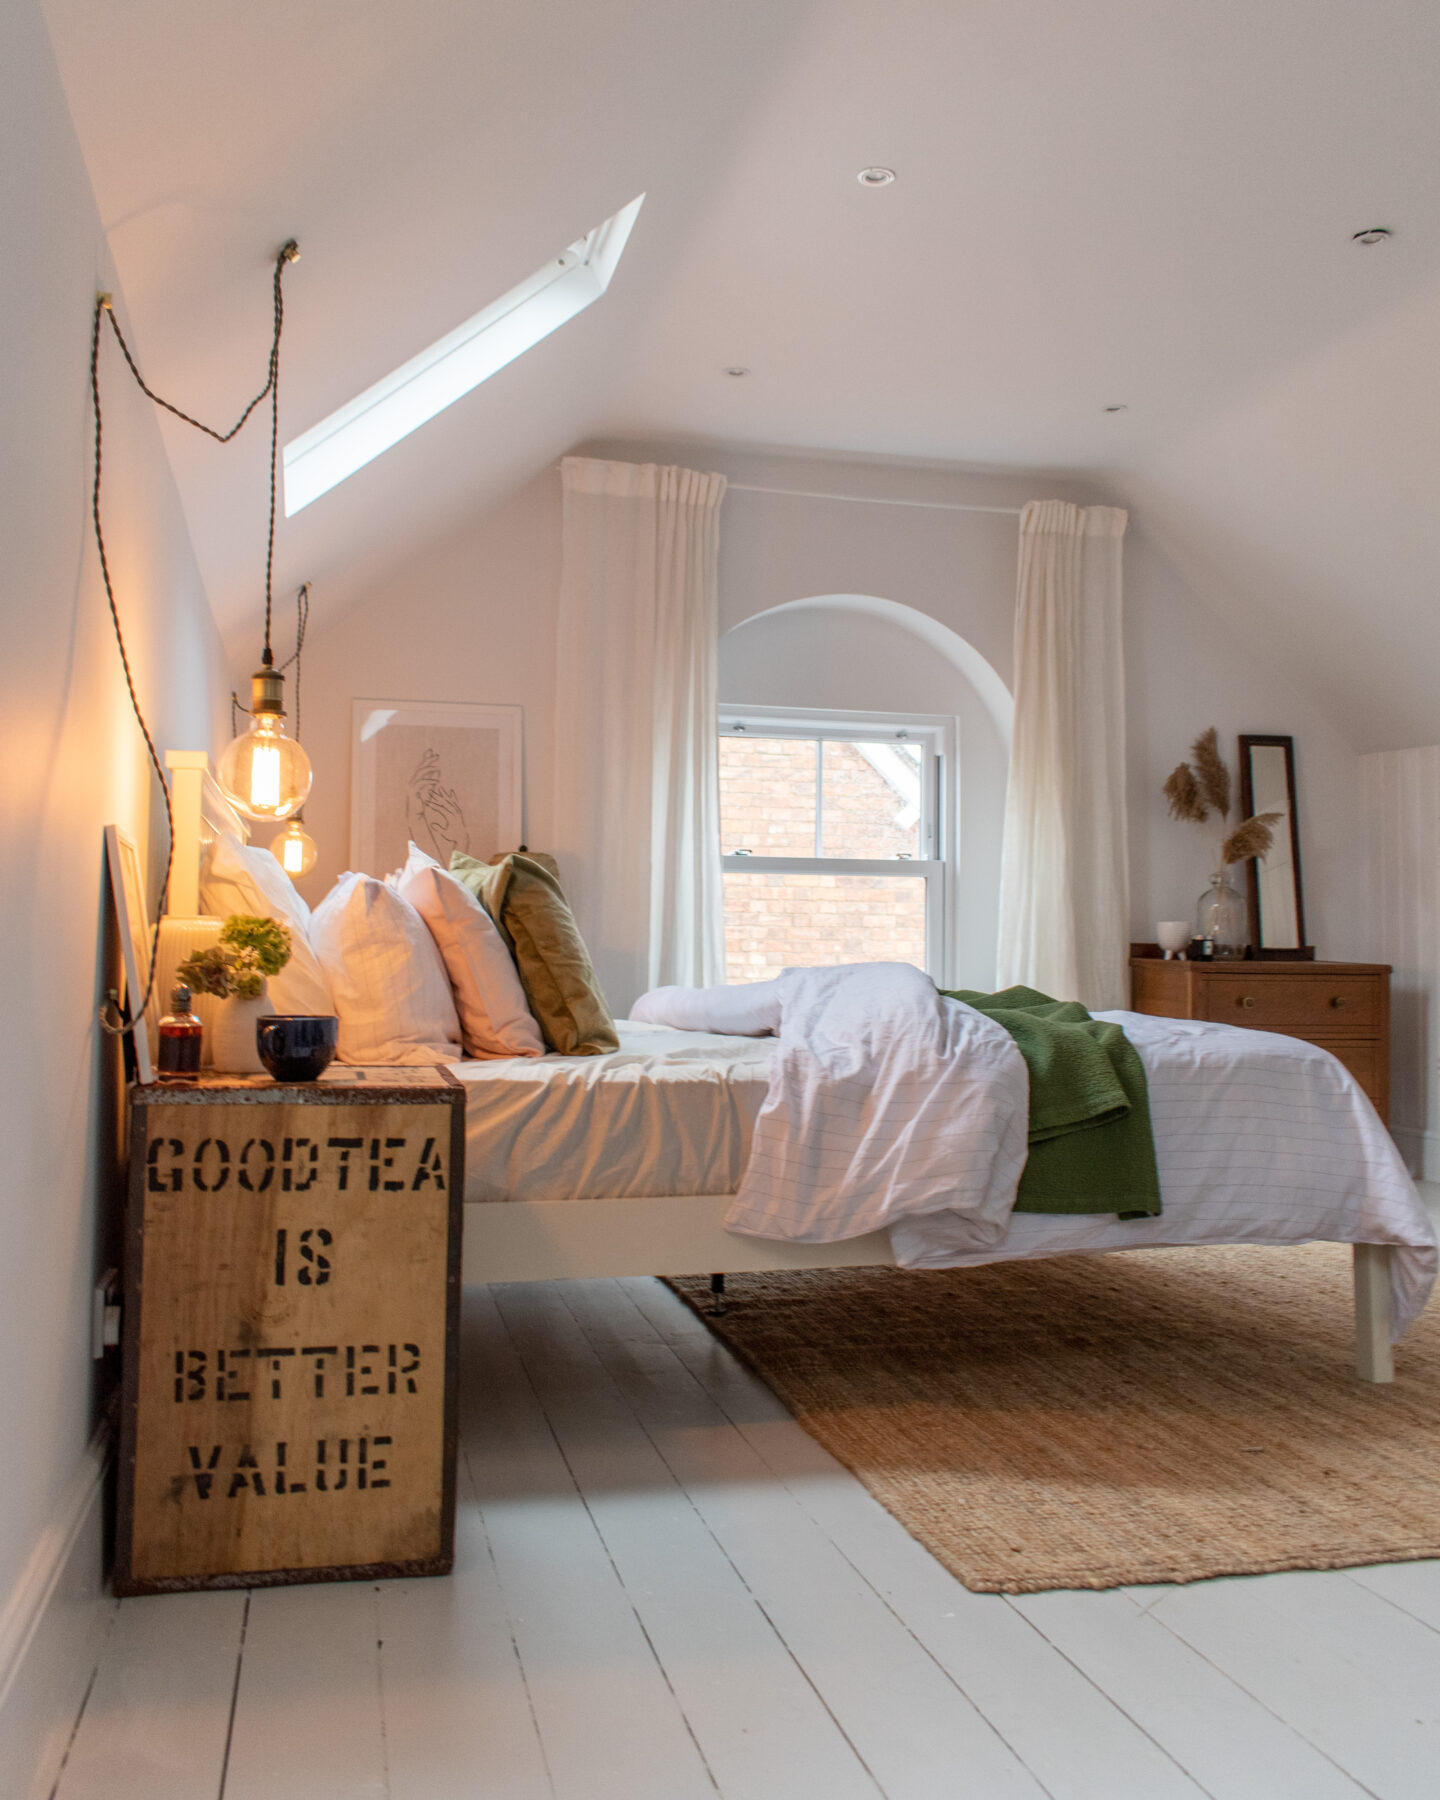 Attic Bedroom Renovation: From dated to Fresh & Bright